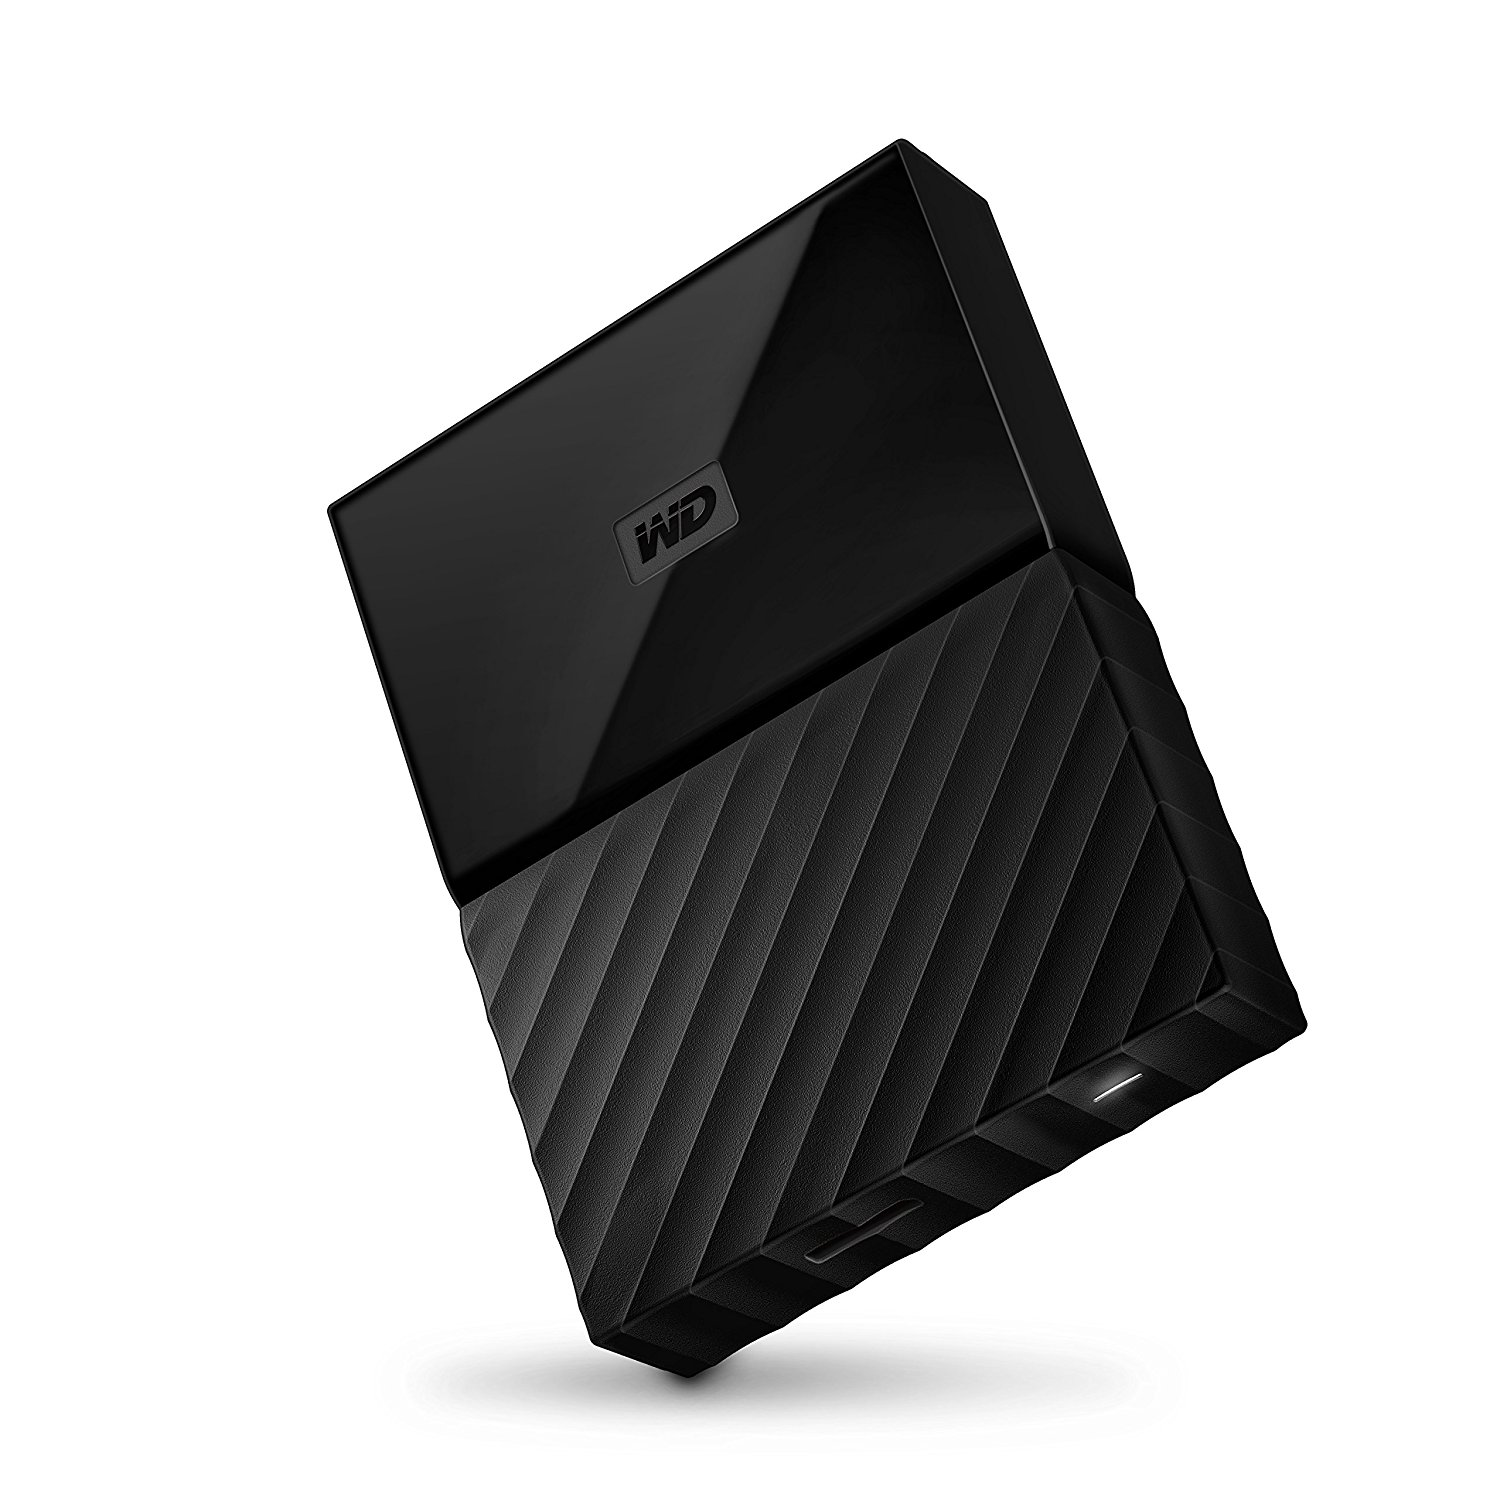 WD 1TB My Passport USB 3.0 Secure Portable Hard Drive (Đen)